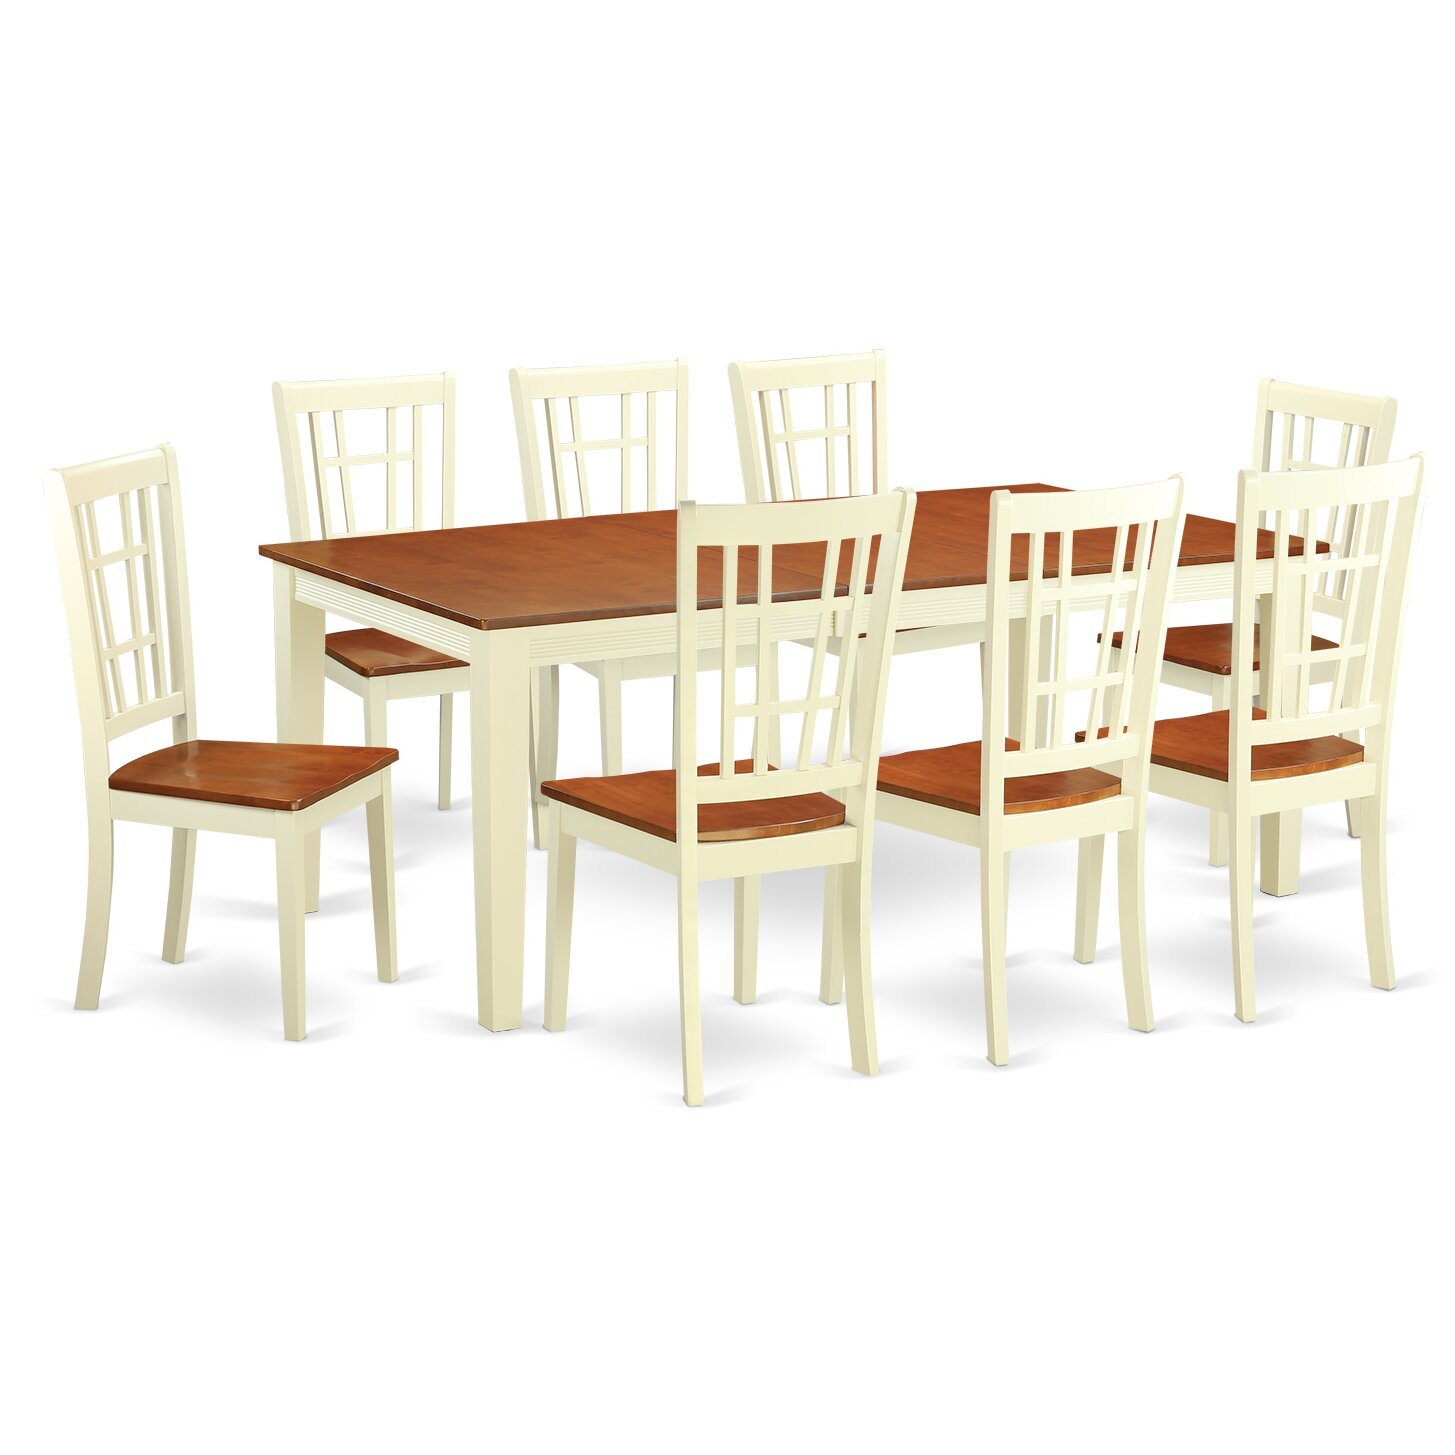 East west quincy 9 piece dining set wayfair for Jardin 8 piece dining set